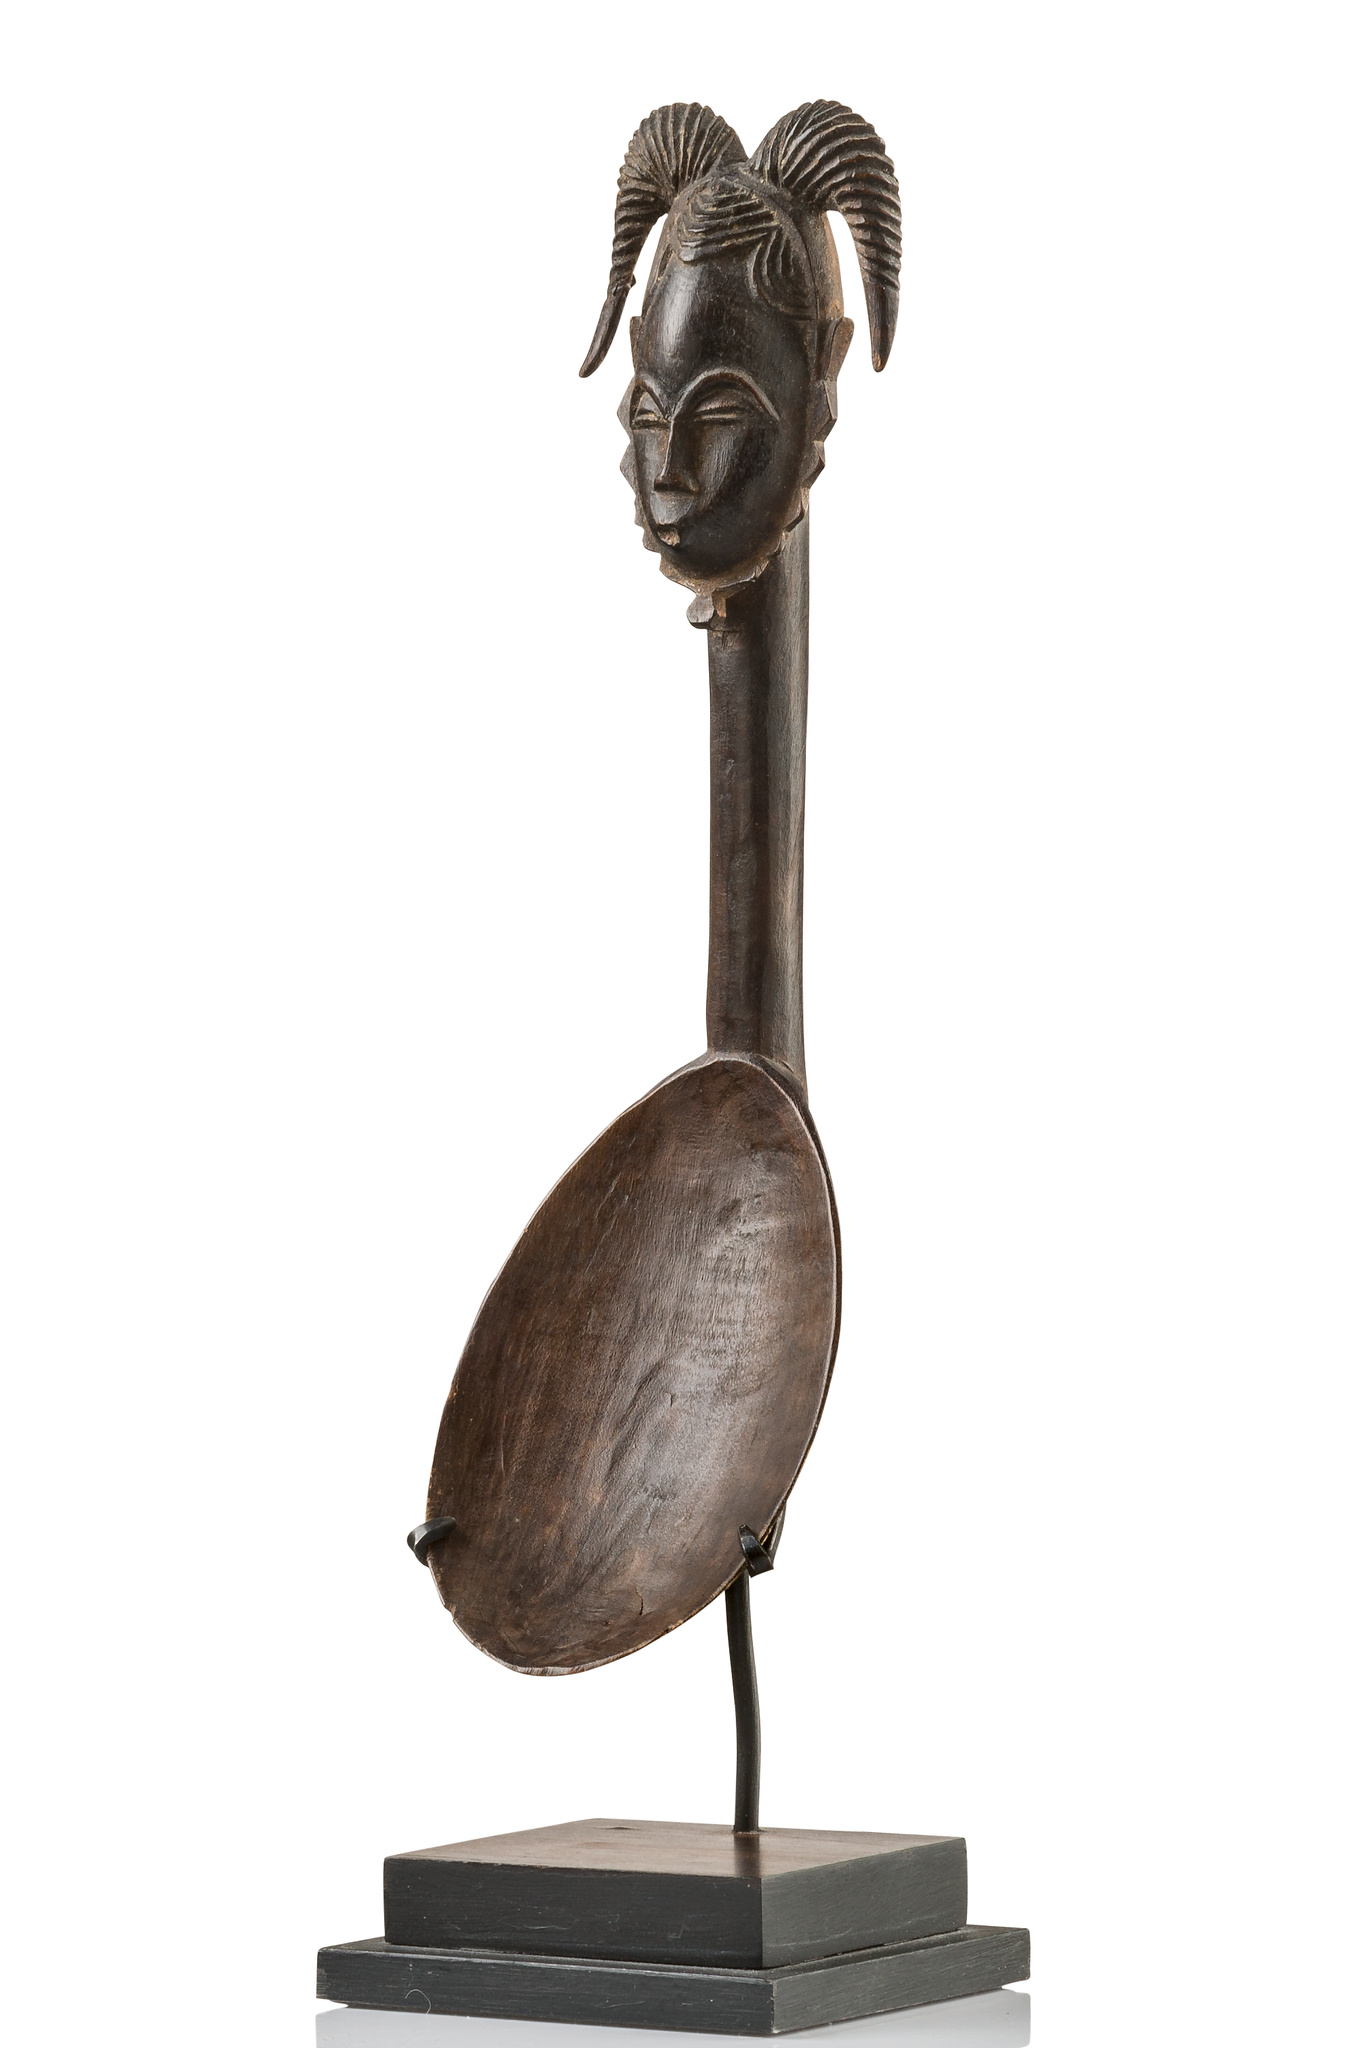 Anthropomorphic spoon